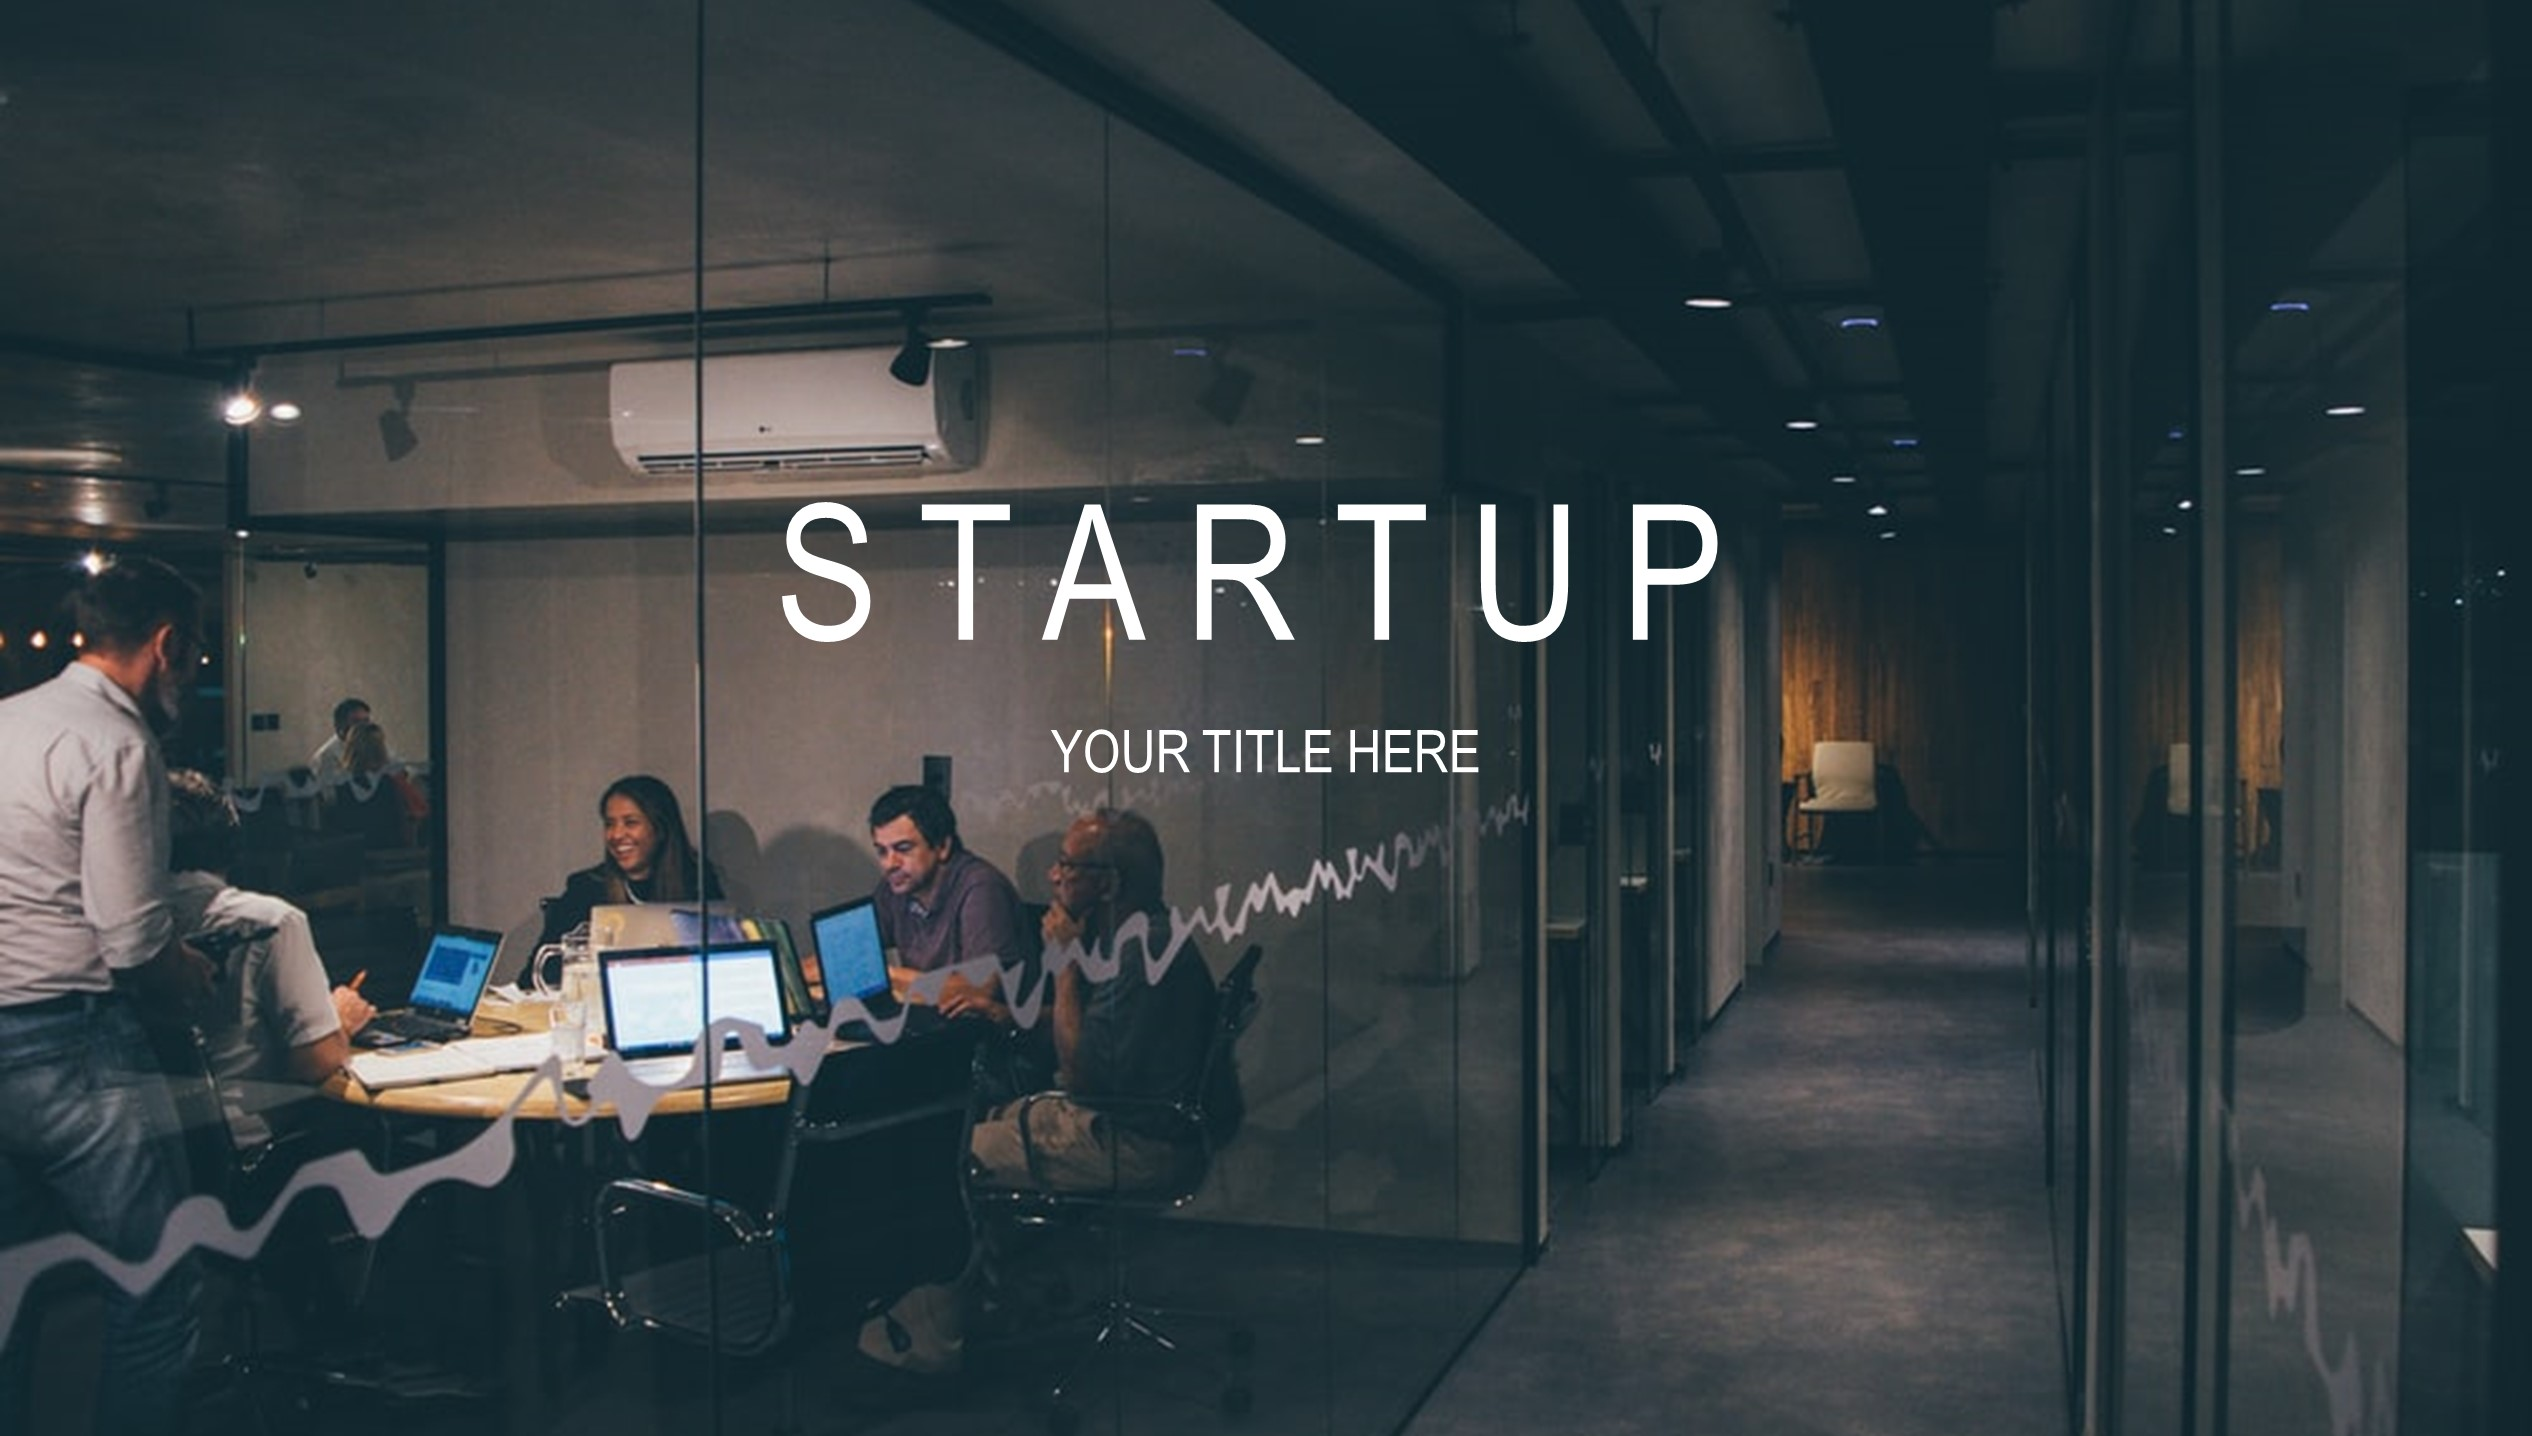 Startup pitch deck template cover by Mad Creative Beanstalk.